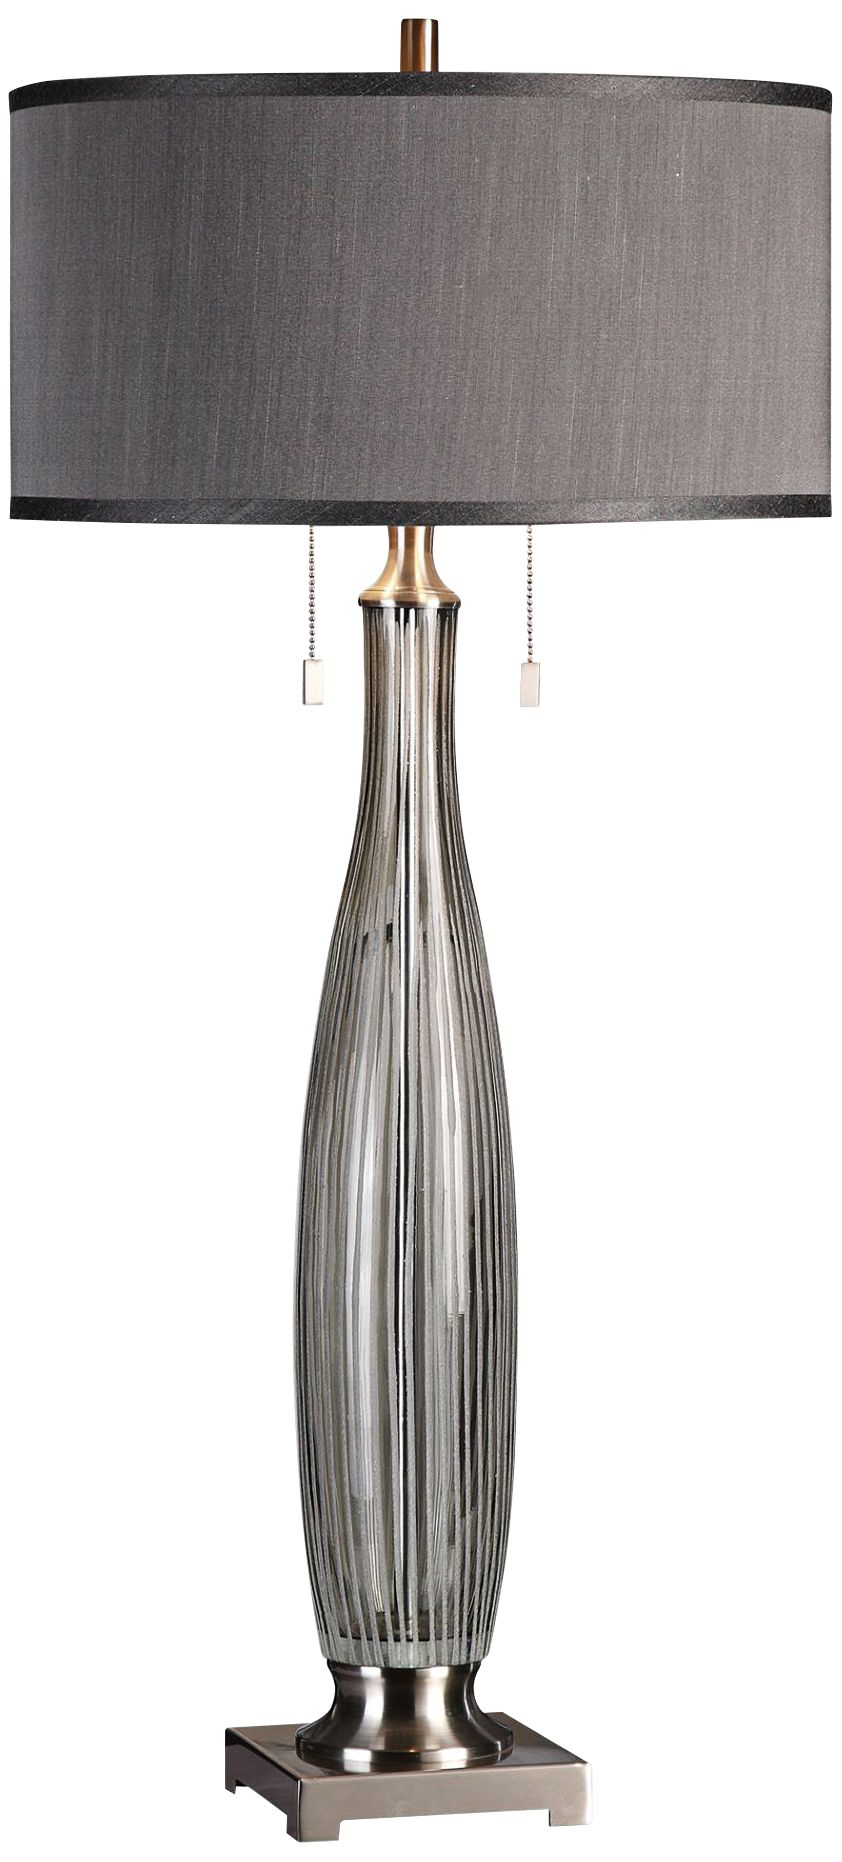 Uttermost Coloma Smoke Gray Striped Glass Table Lamp